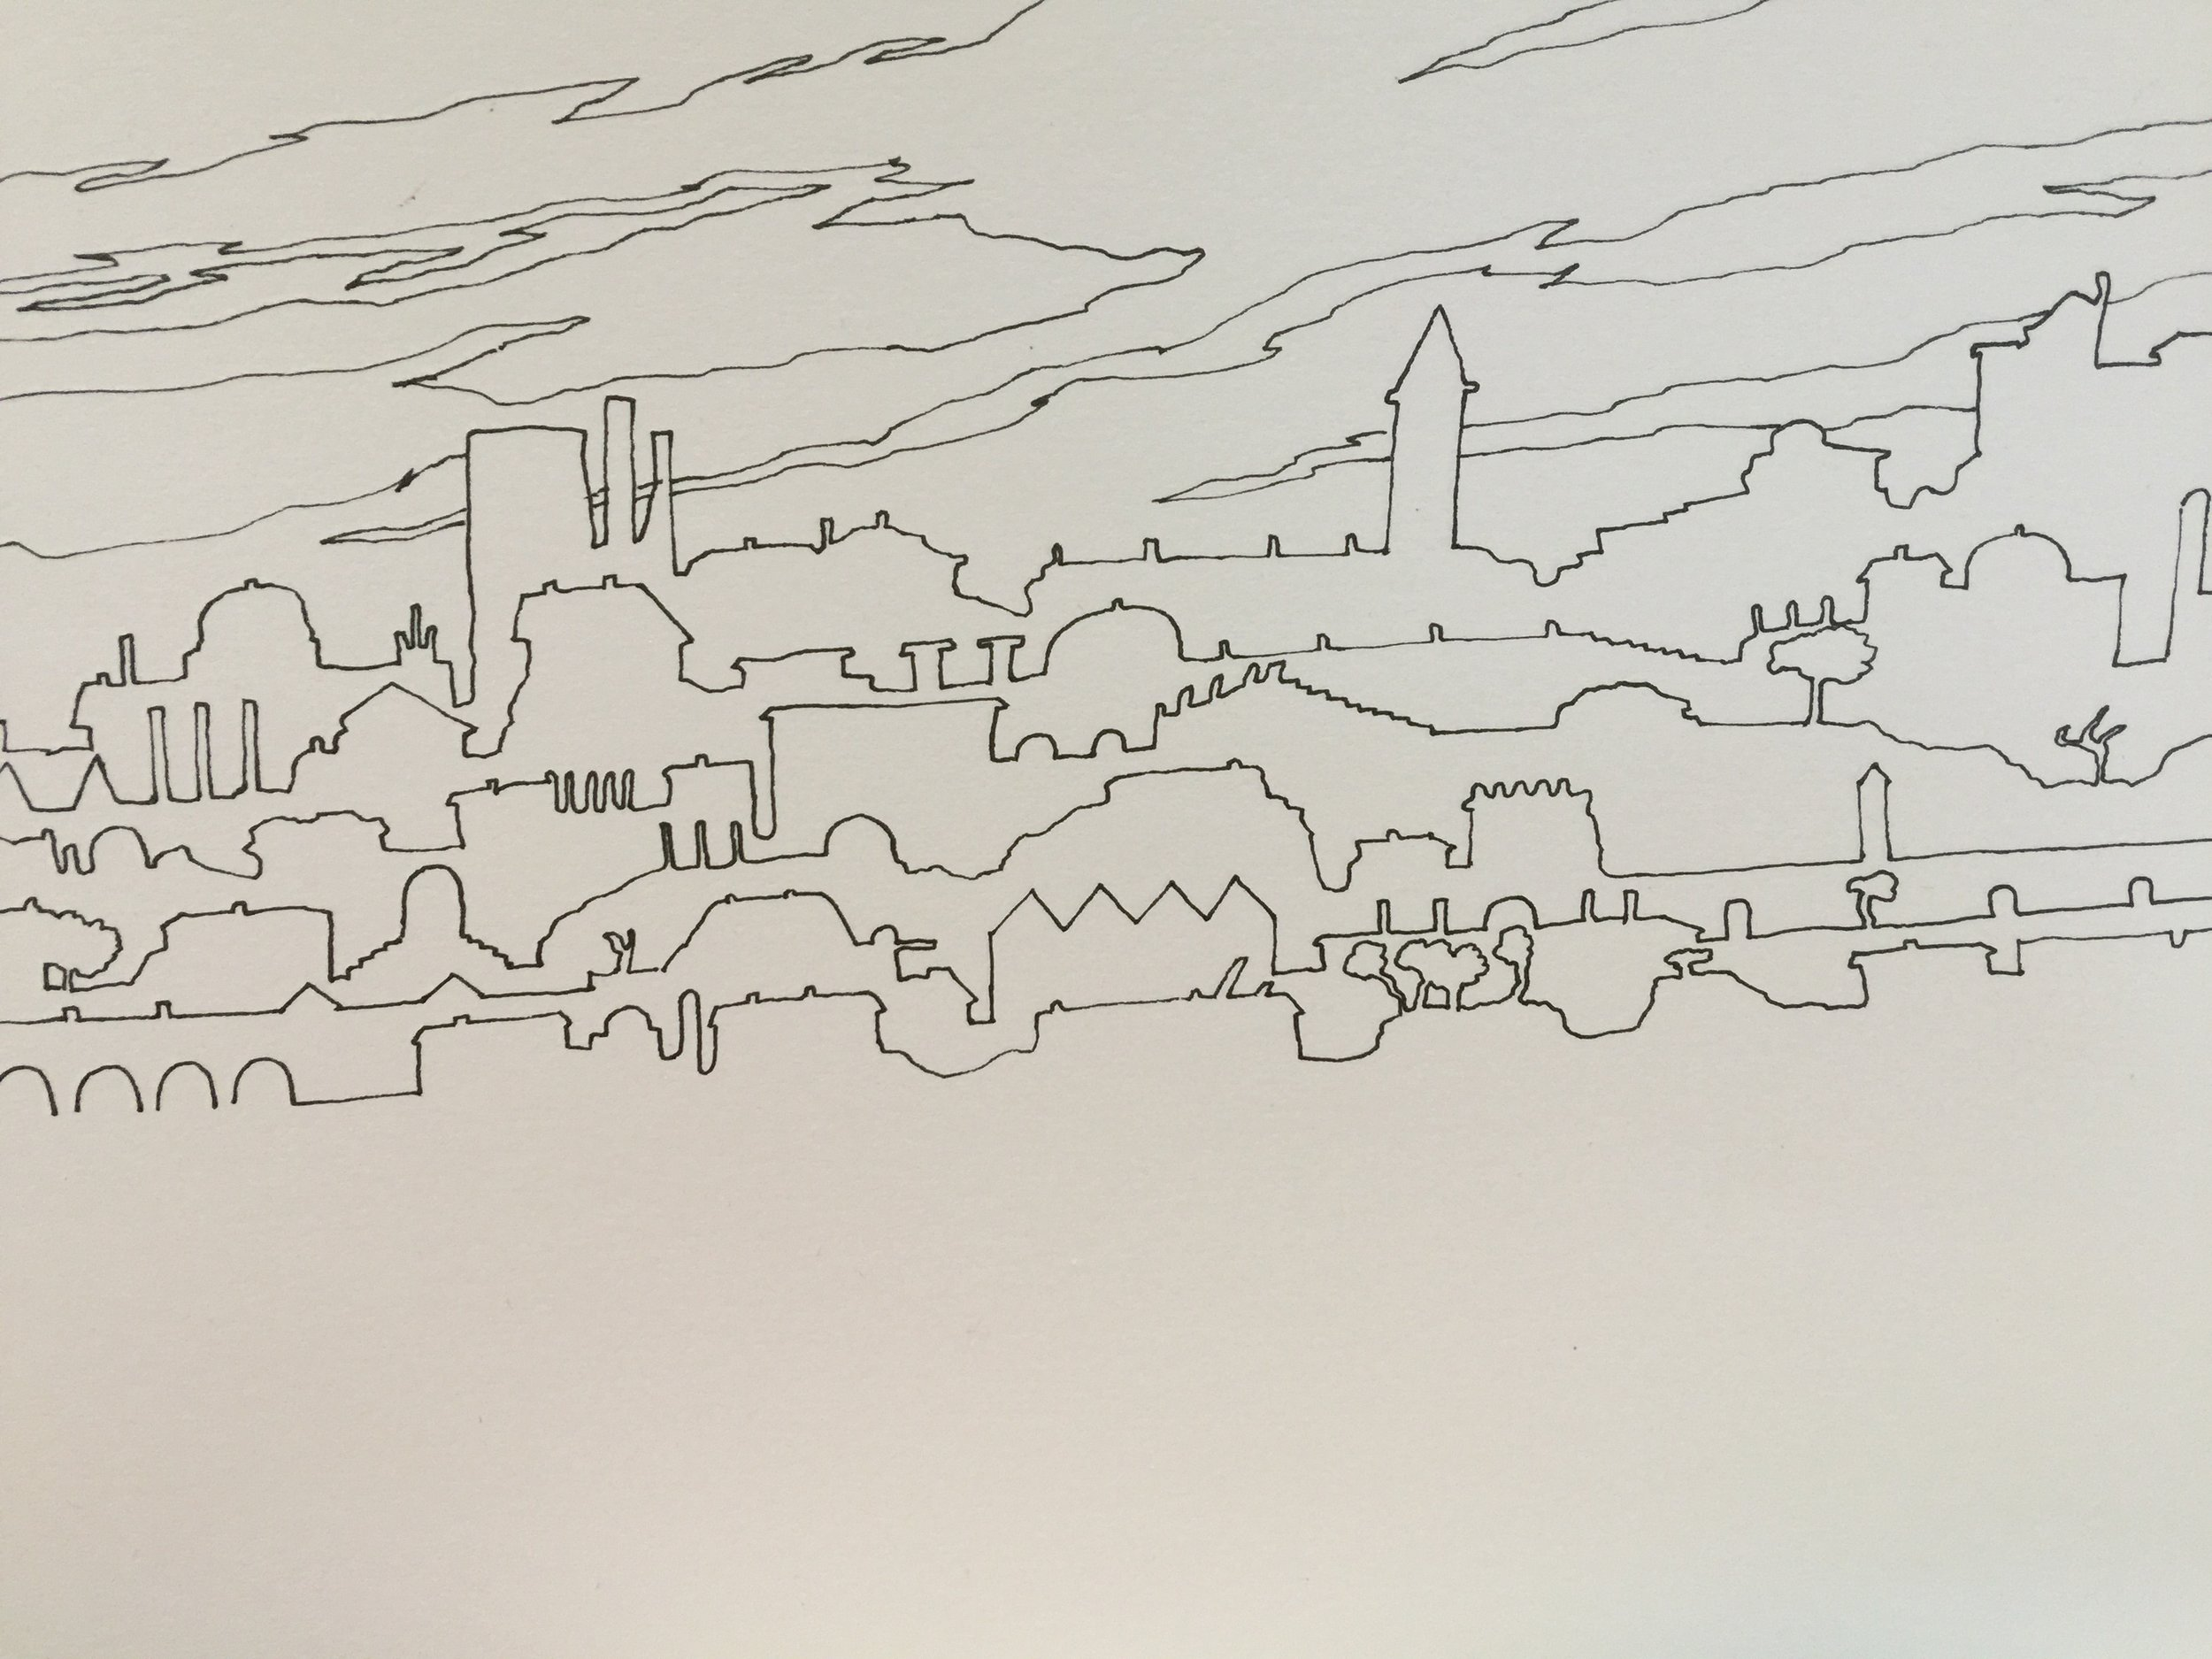 Doodle town with no foreground